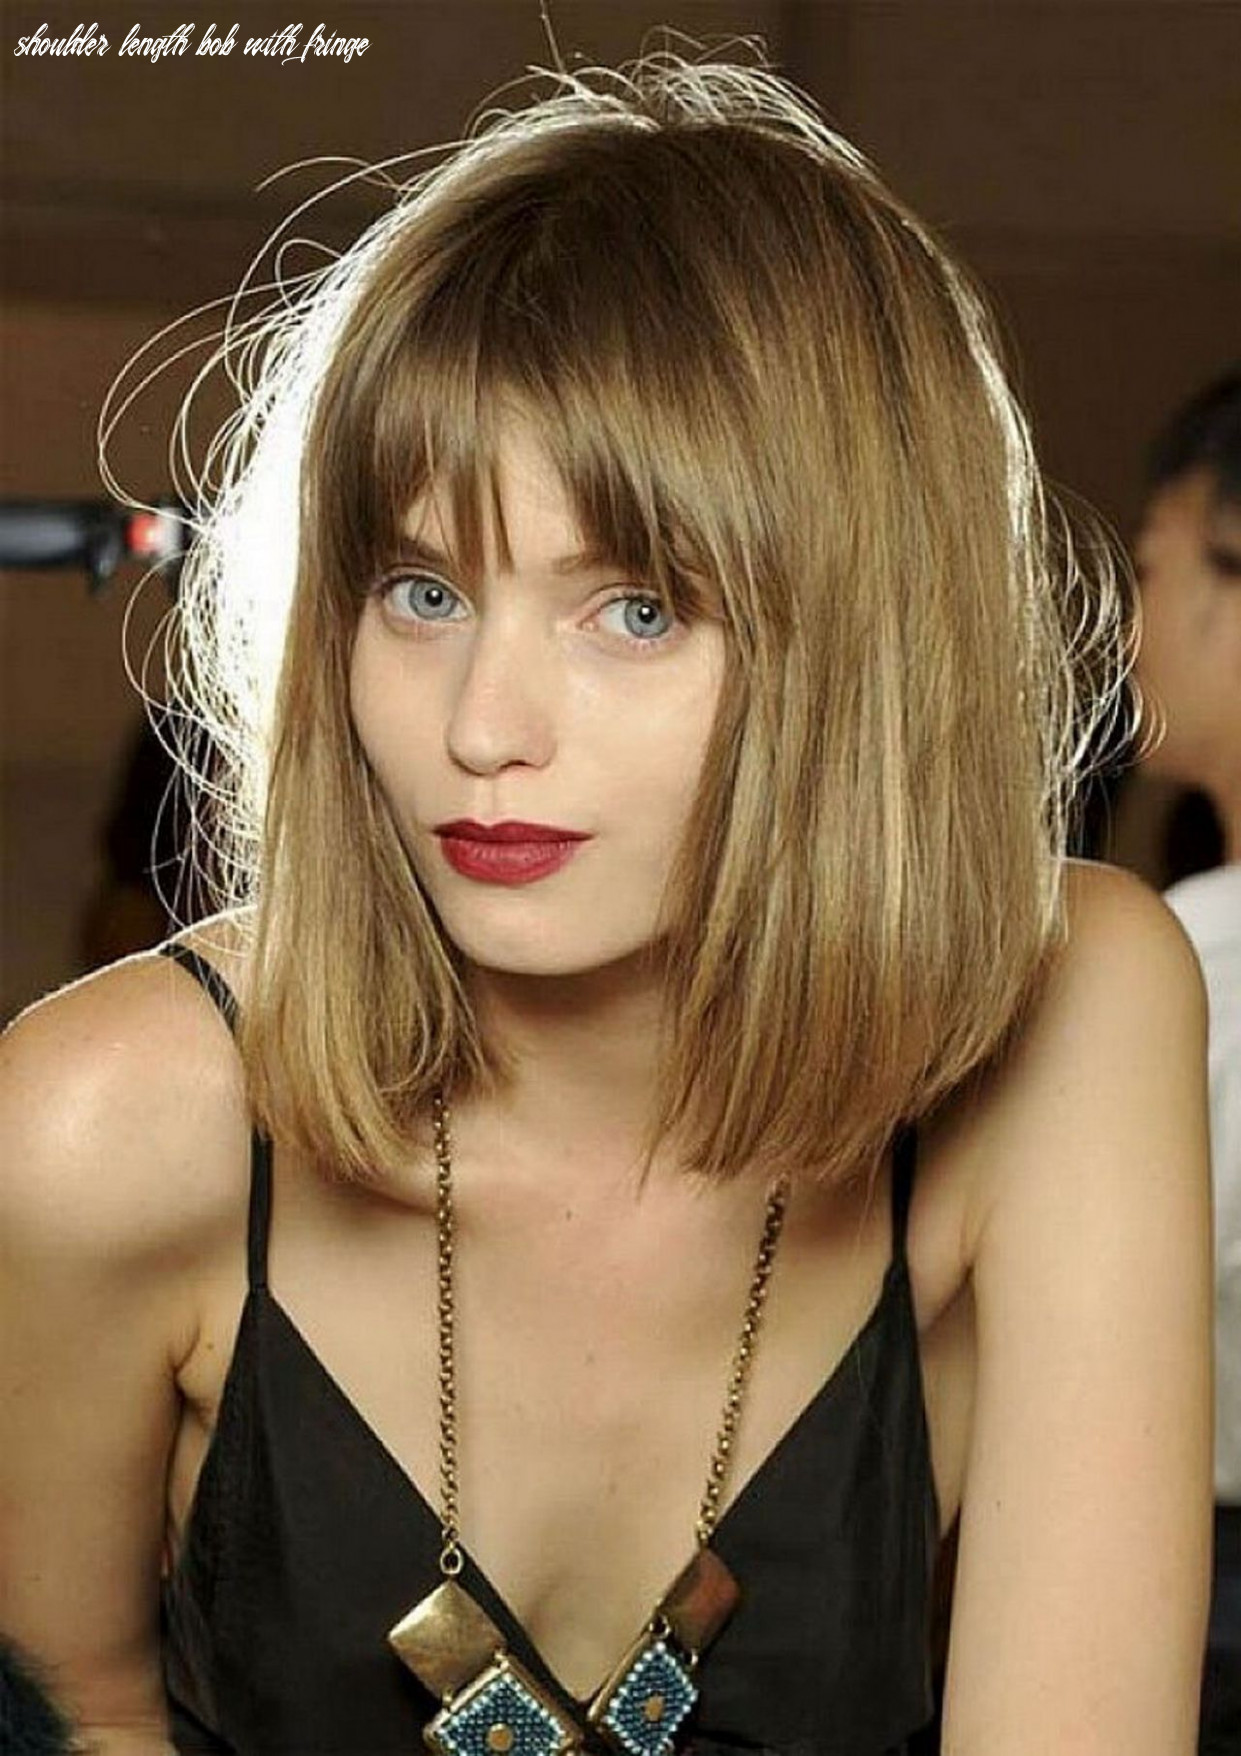 Pin on hairstyles shoulder length bob with fringe